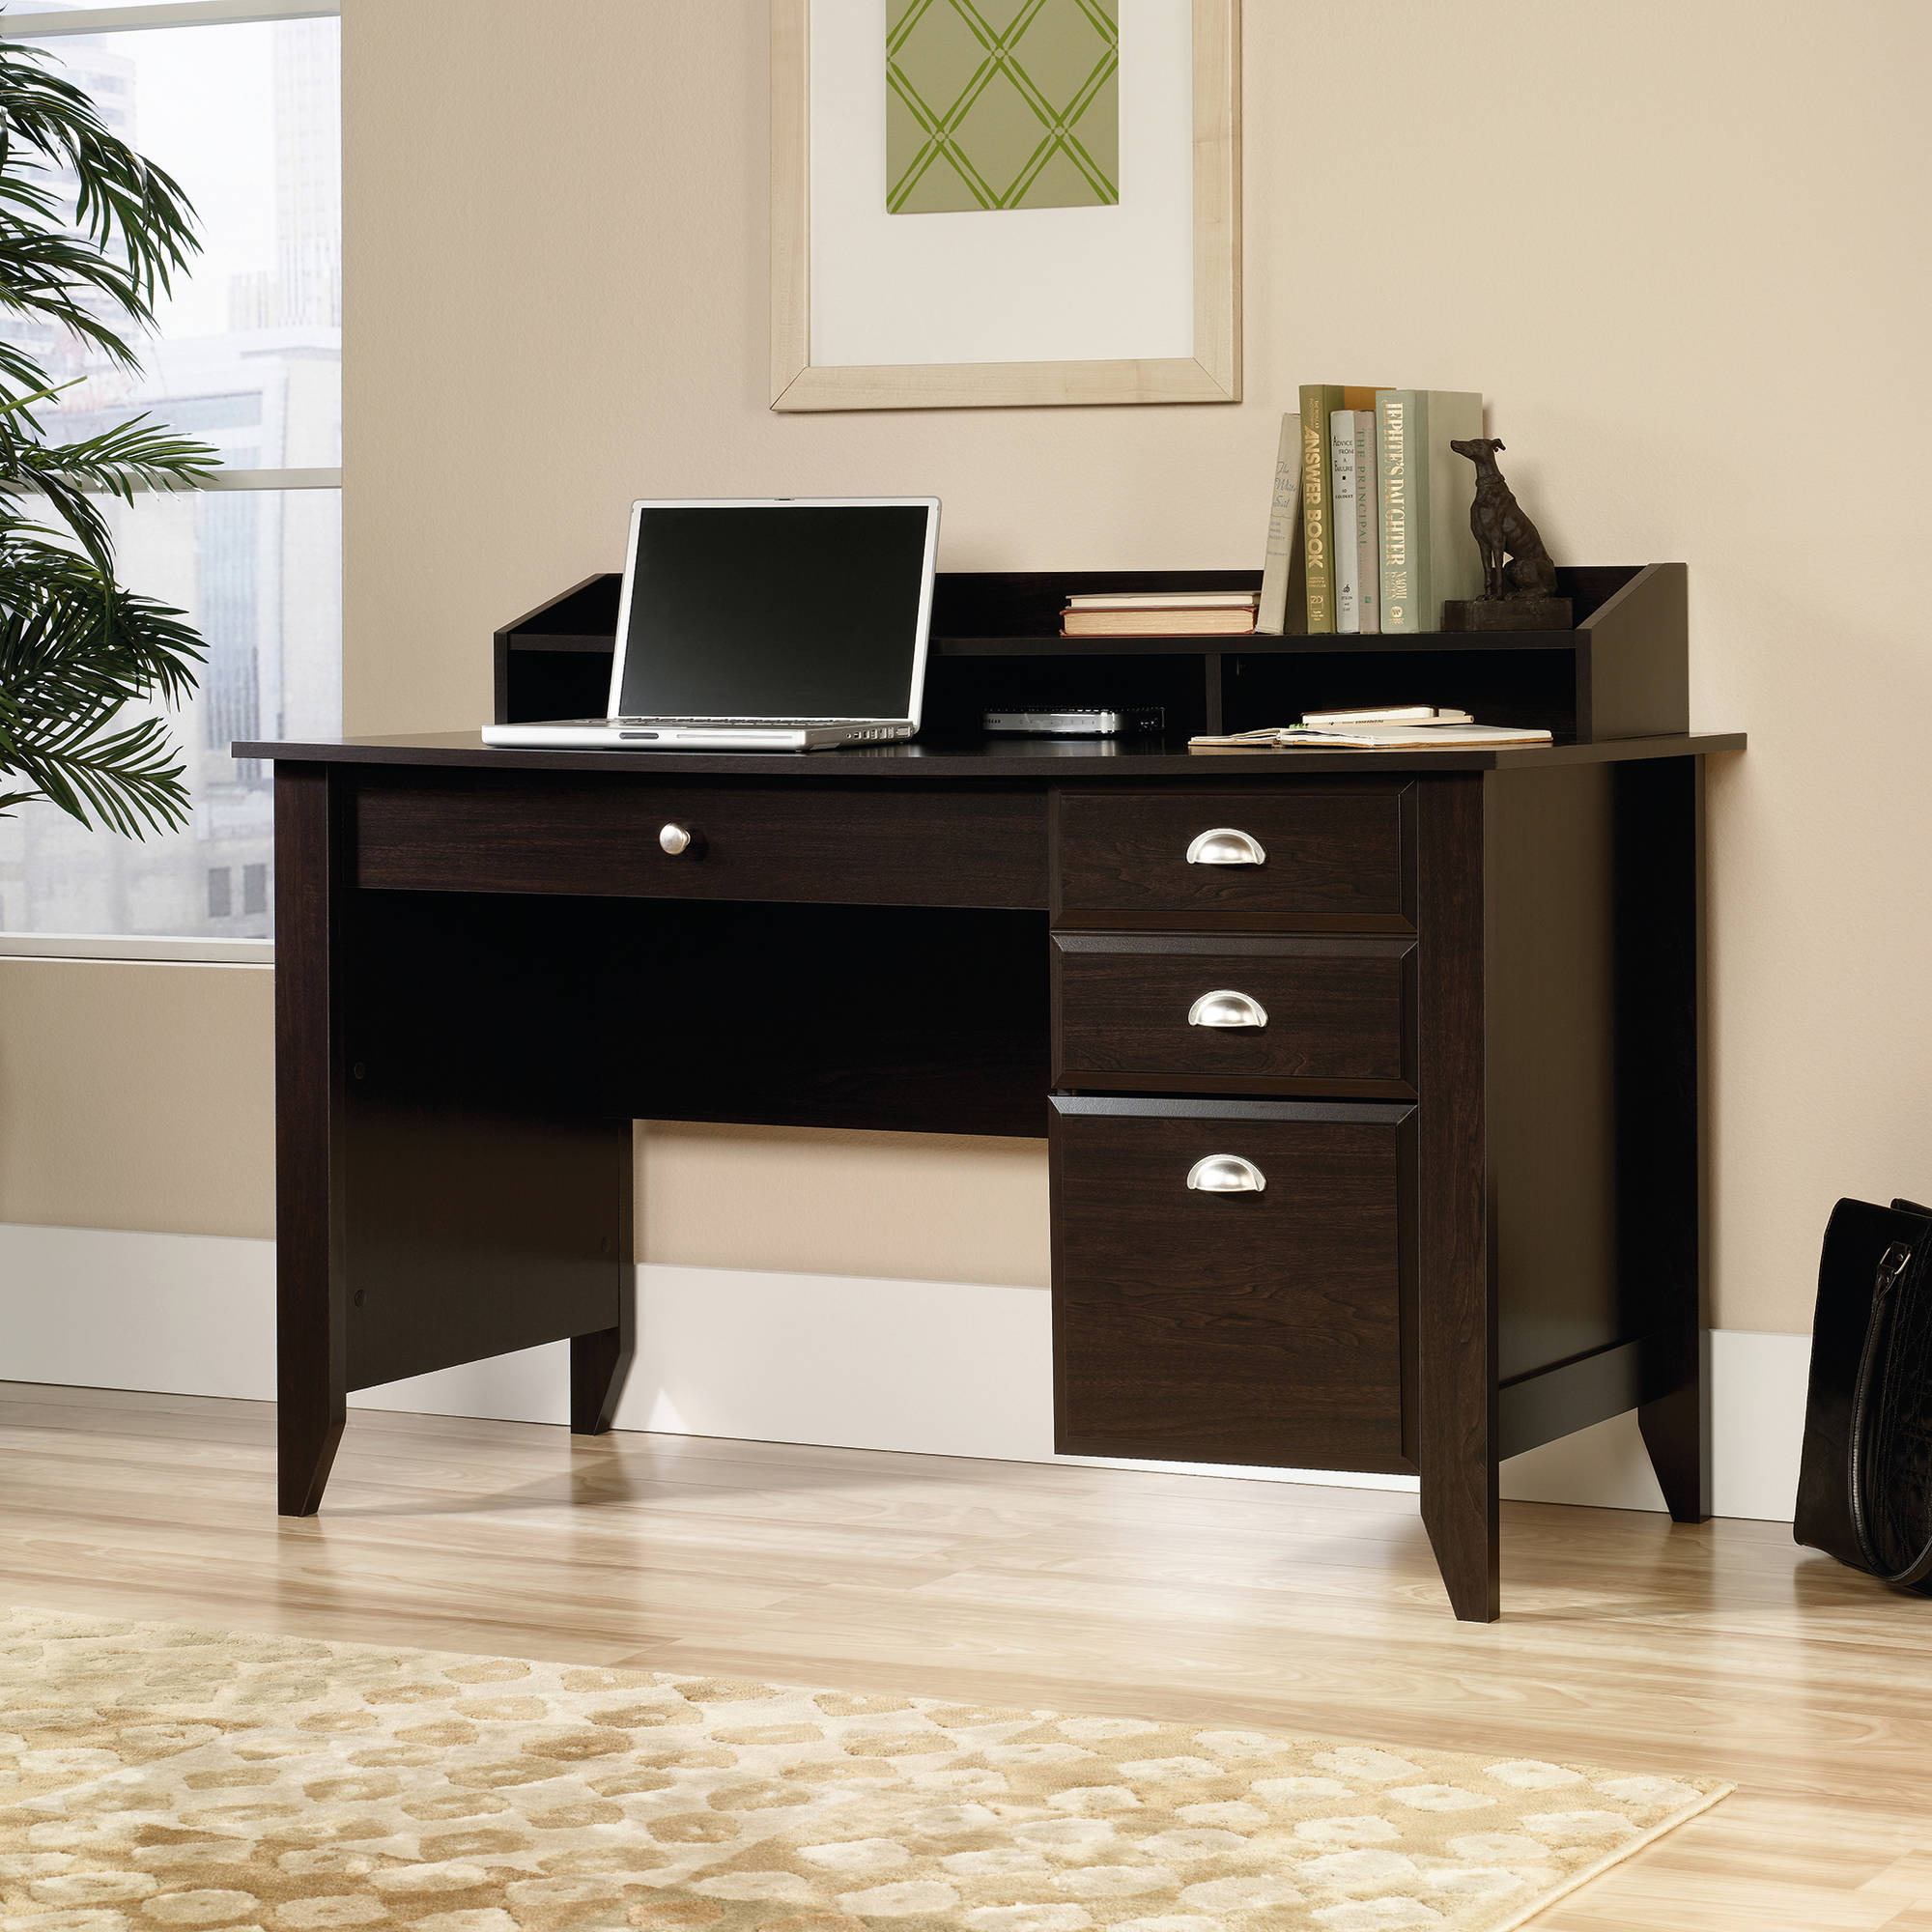 Sauder Shoal Creek Desk, Multiple Finishes